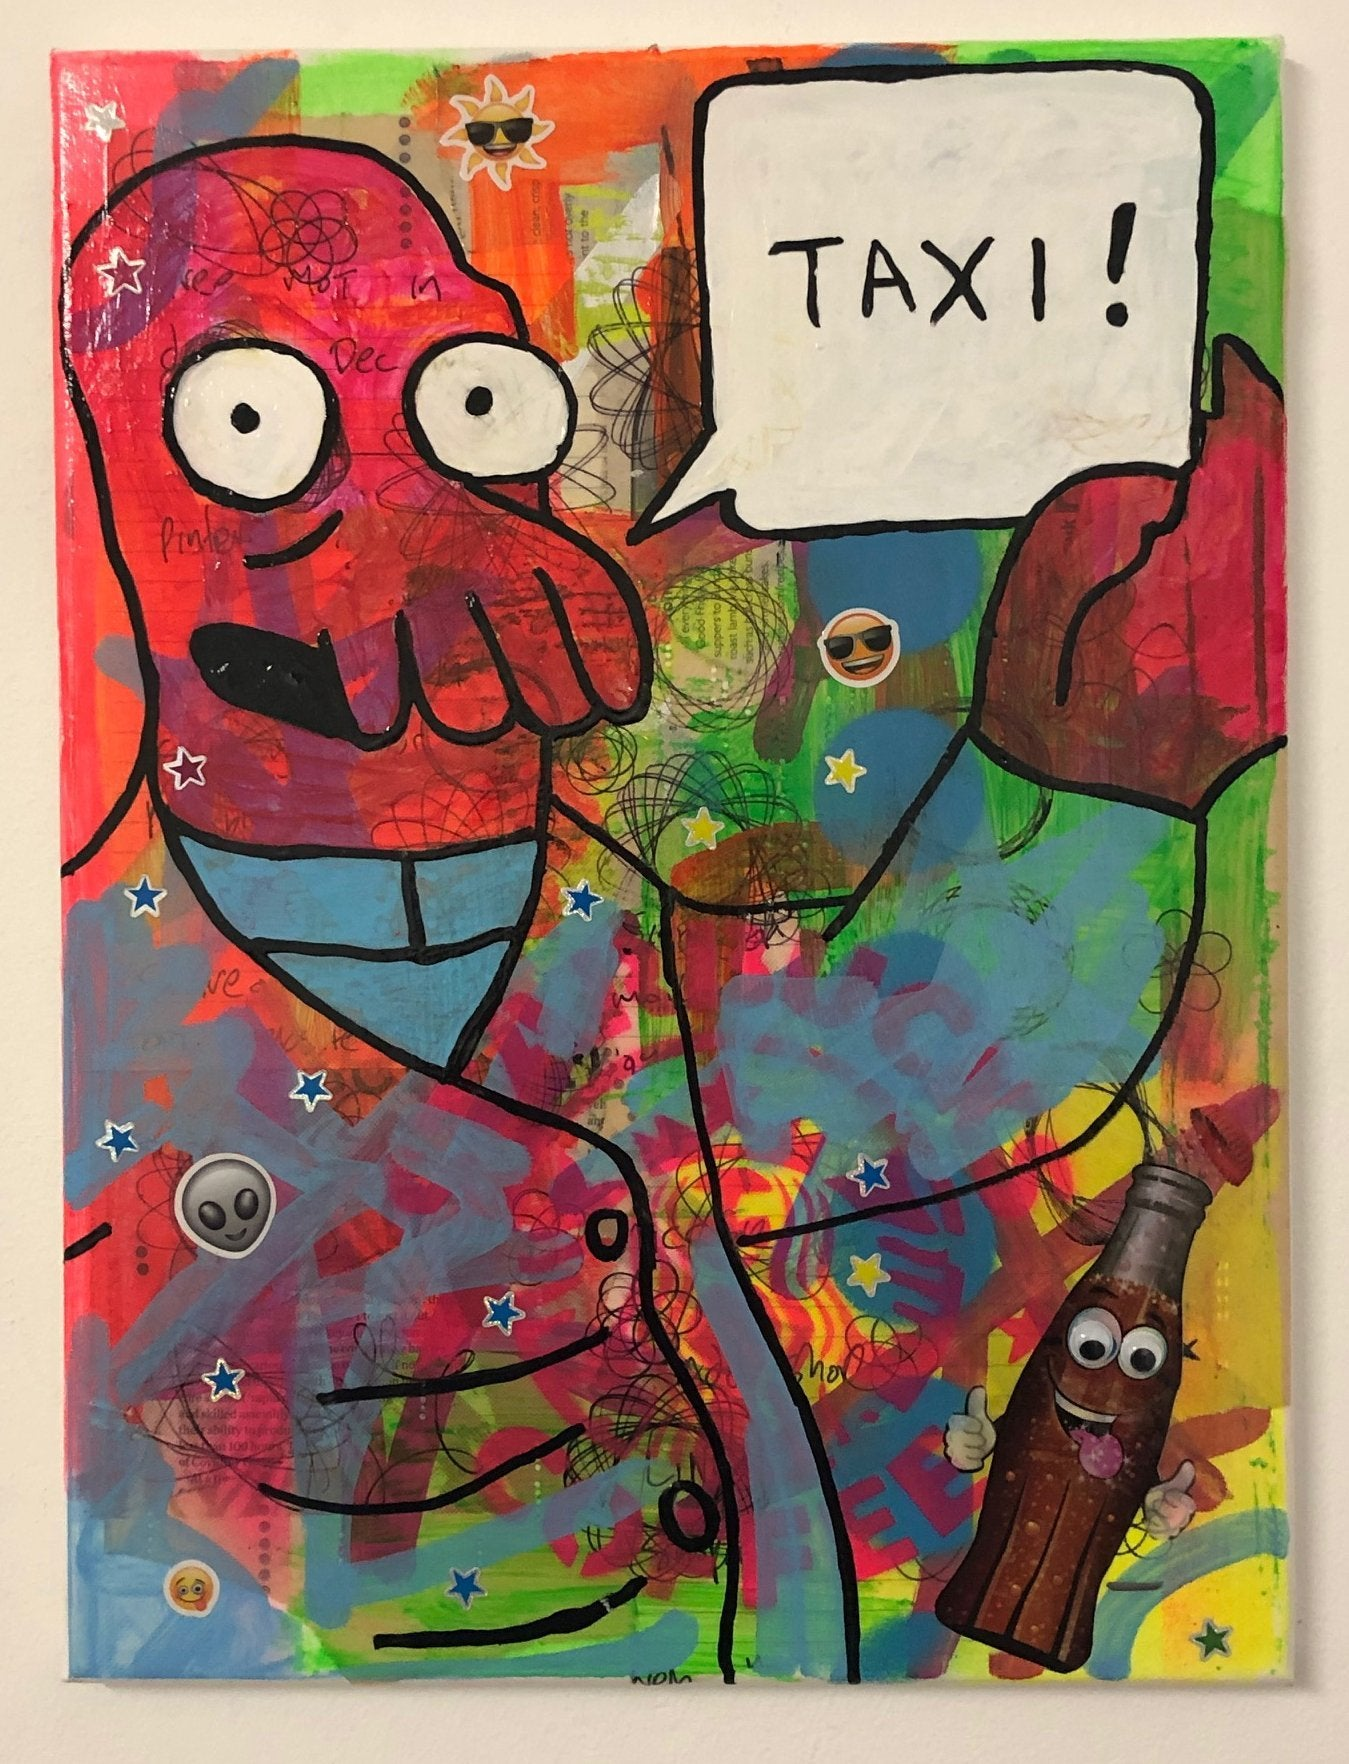 Call me a cab by Barrie J Davies 2020, mixed media on canvas, unframed, 30cm x 40cm. Barrie J Davies is an Artist - Pop Art and Street art inspired Artist based in Brighton England UK - Pop Art Paintings, Street Art Prints & Editions available